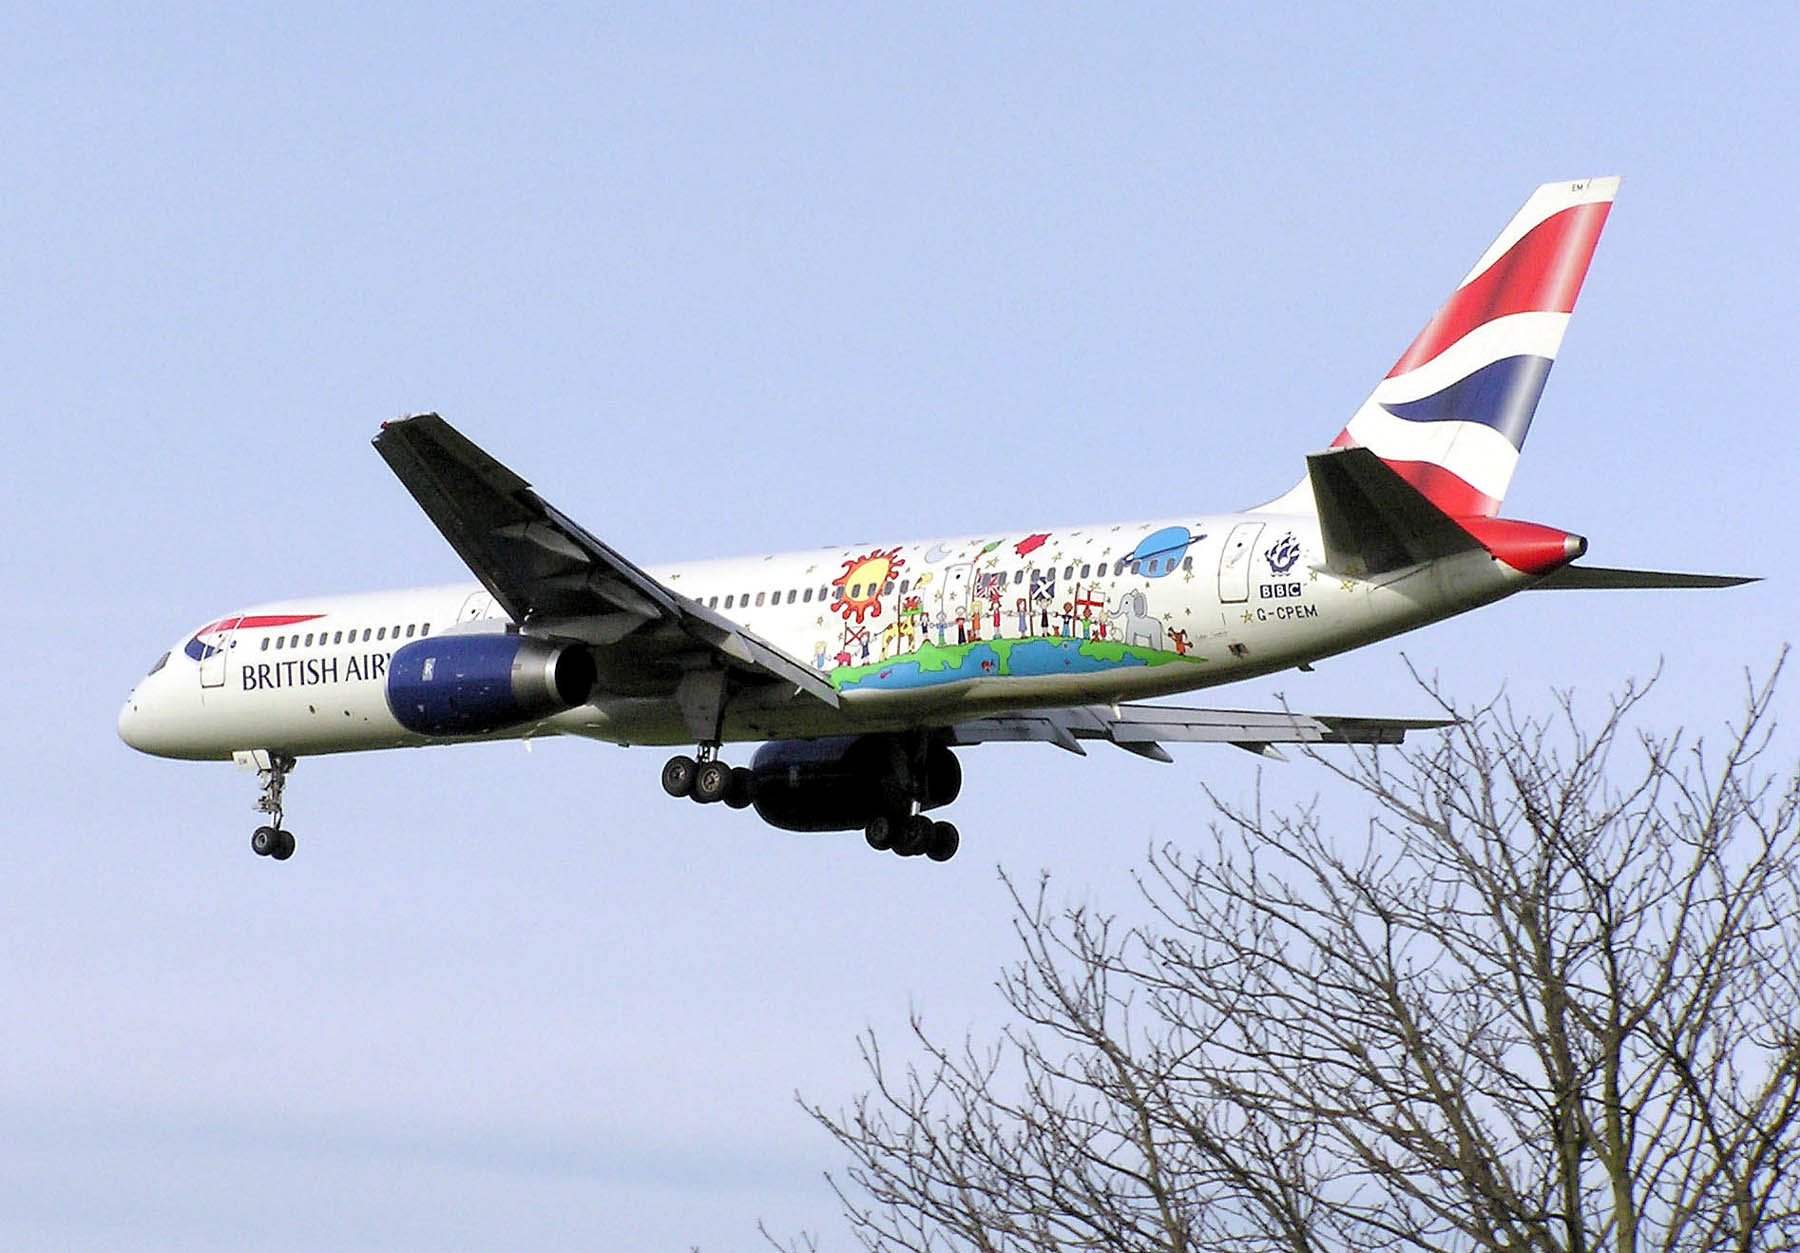 The specially painted Blue Peter British Airways Boeing 757 landing at London Heathrow Airport.